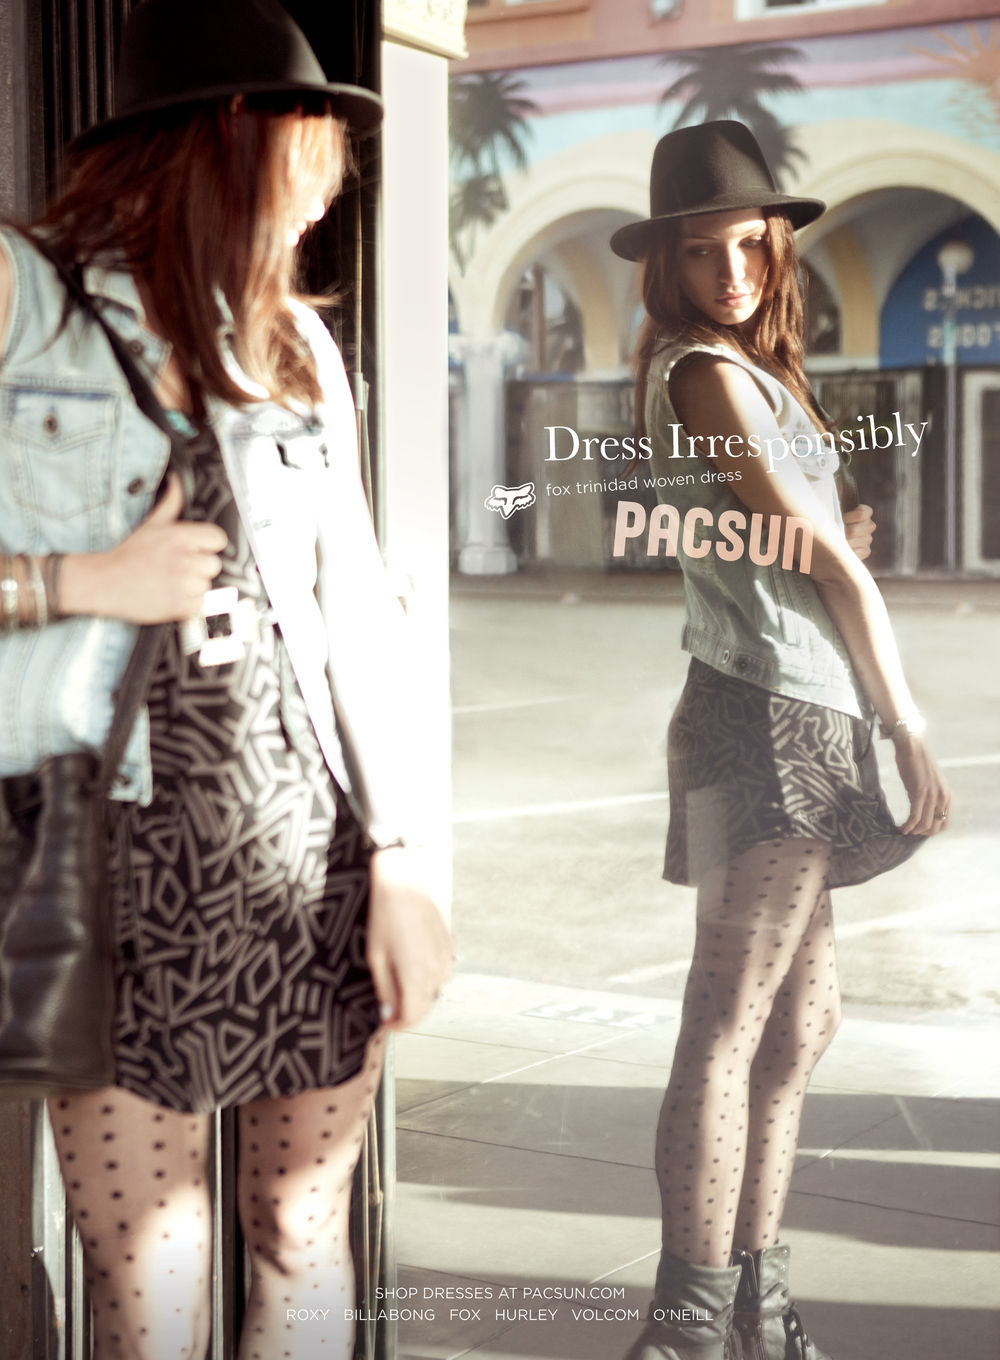 PacSun_Reflection_042611_lo.jpg